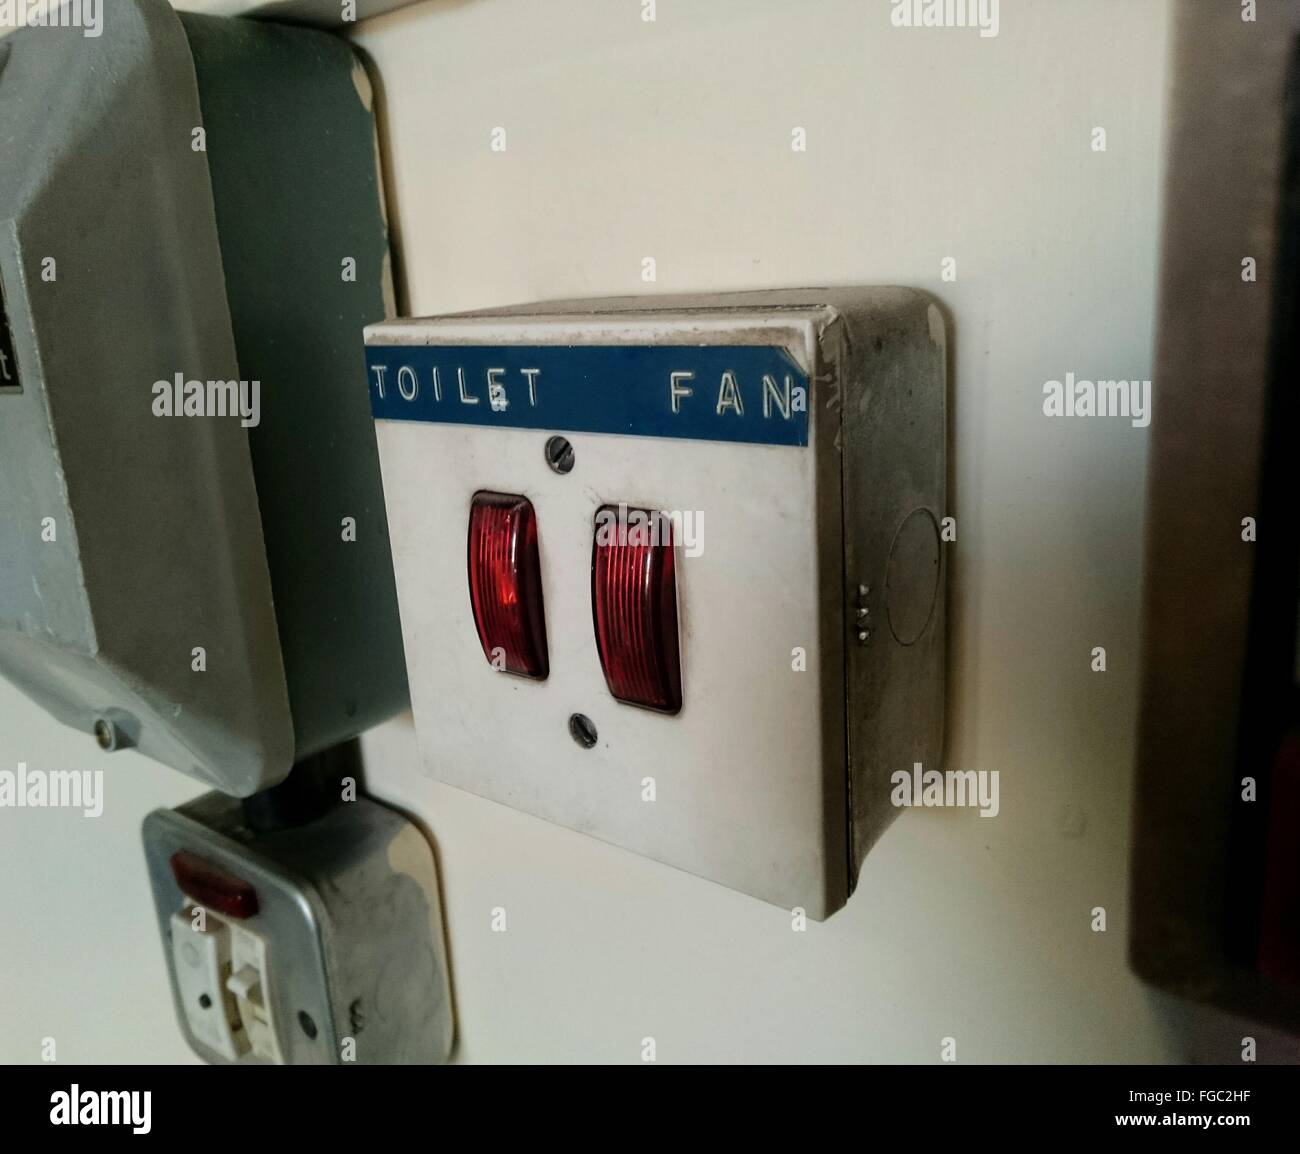 Electric Switches Stock Photos & Electric Switches Stock Images - Alamy